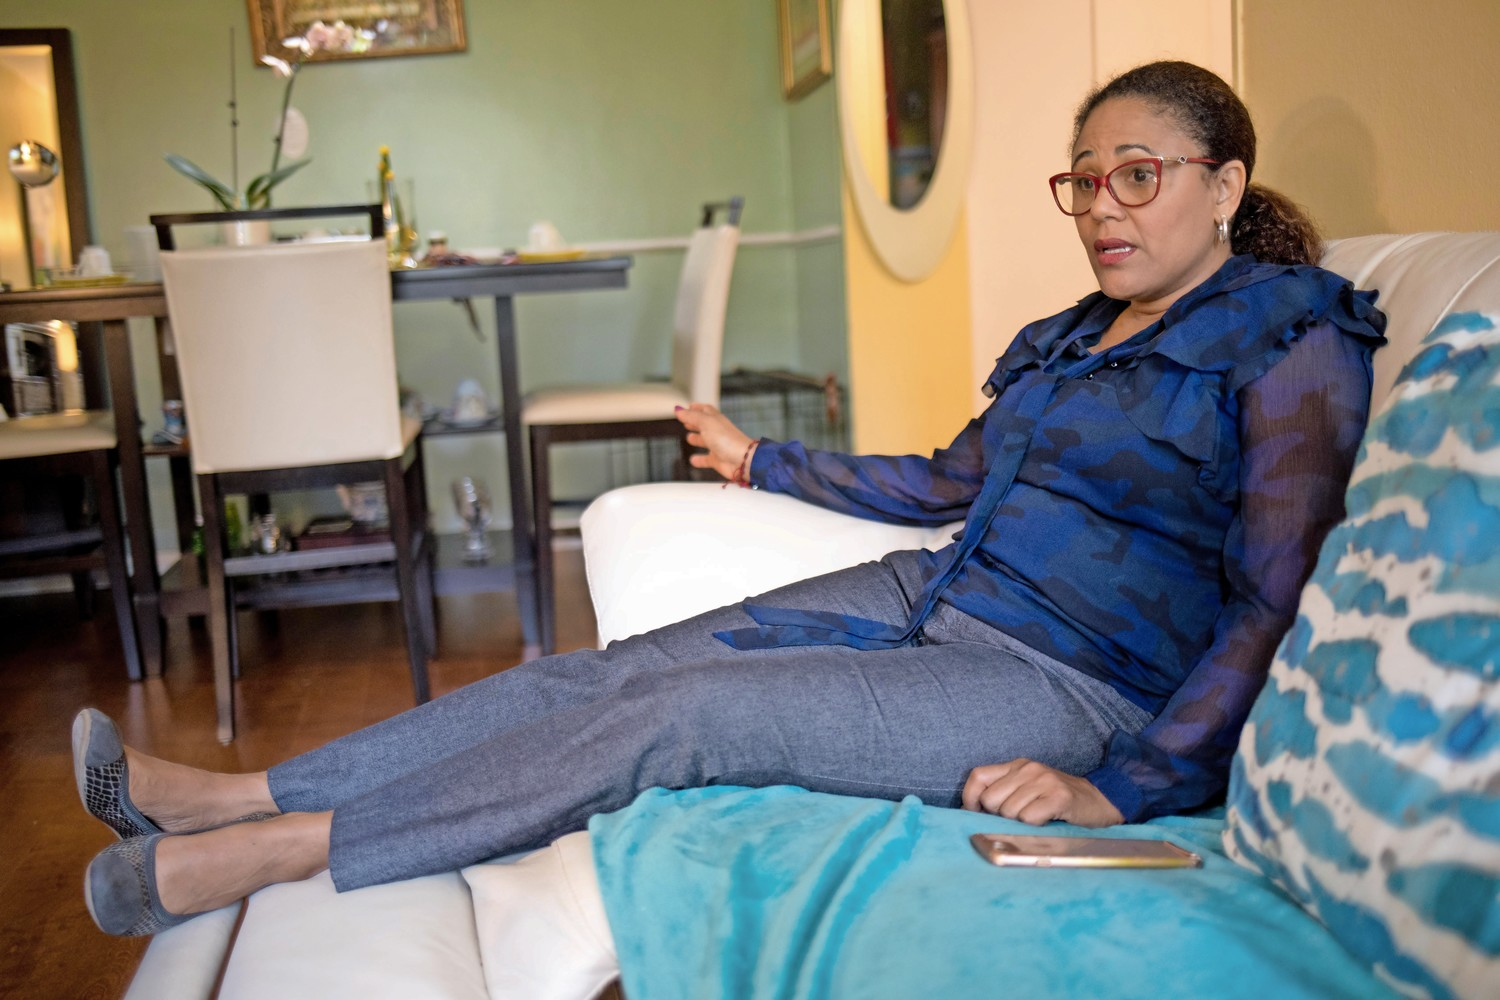 Claudia Imbert has to sit with her legs raised following an accident last year in which she was hit by a car after leaving a student's home. A public school teacher, Imbert is suing the United Federation of Teachers because they denied her line of duty injury case.